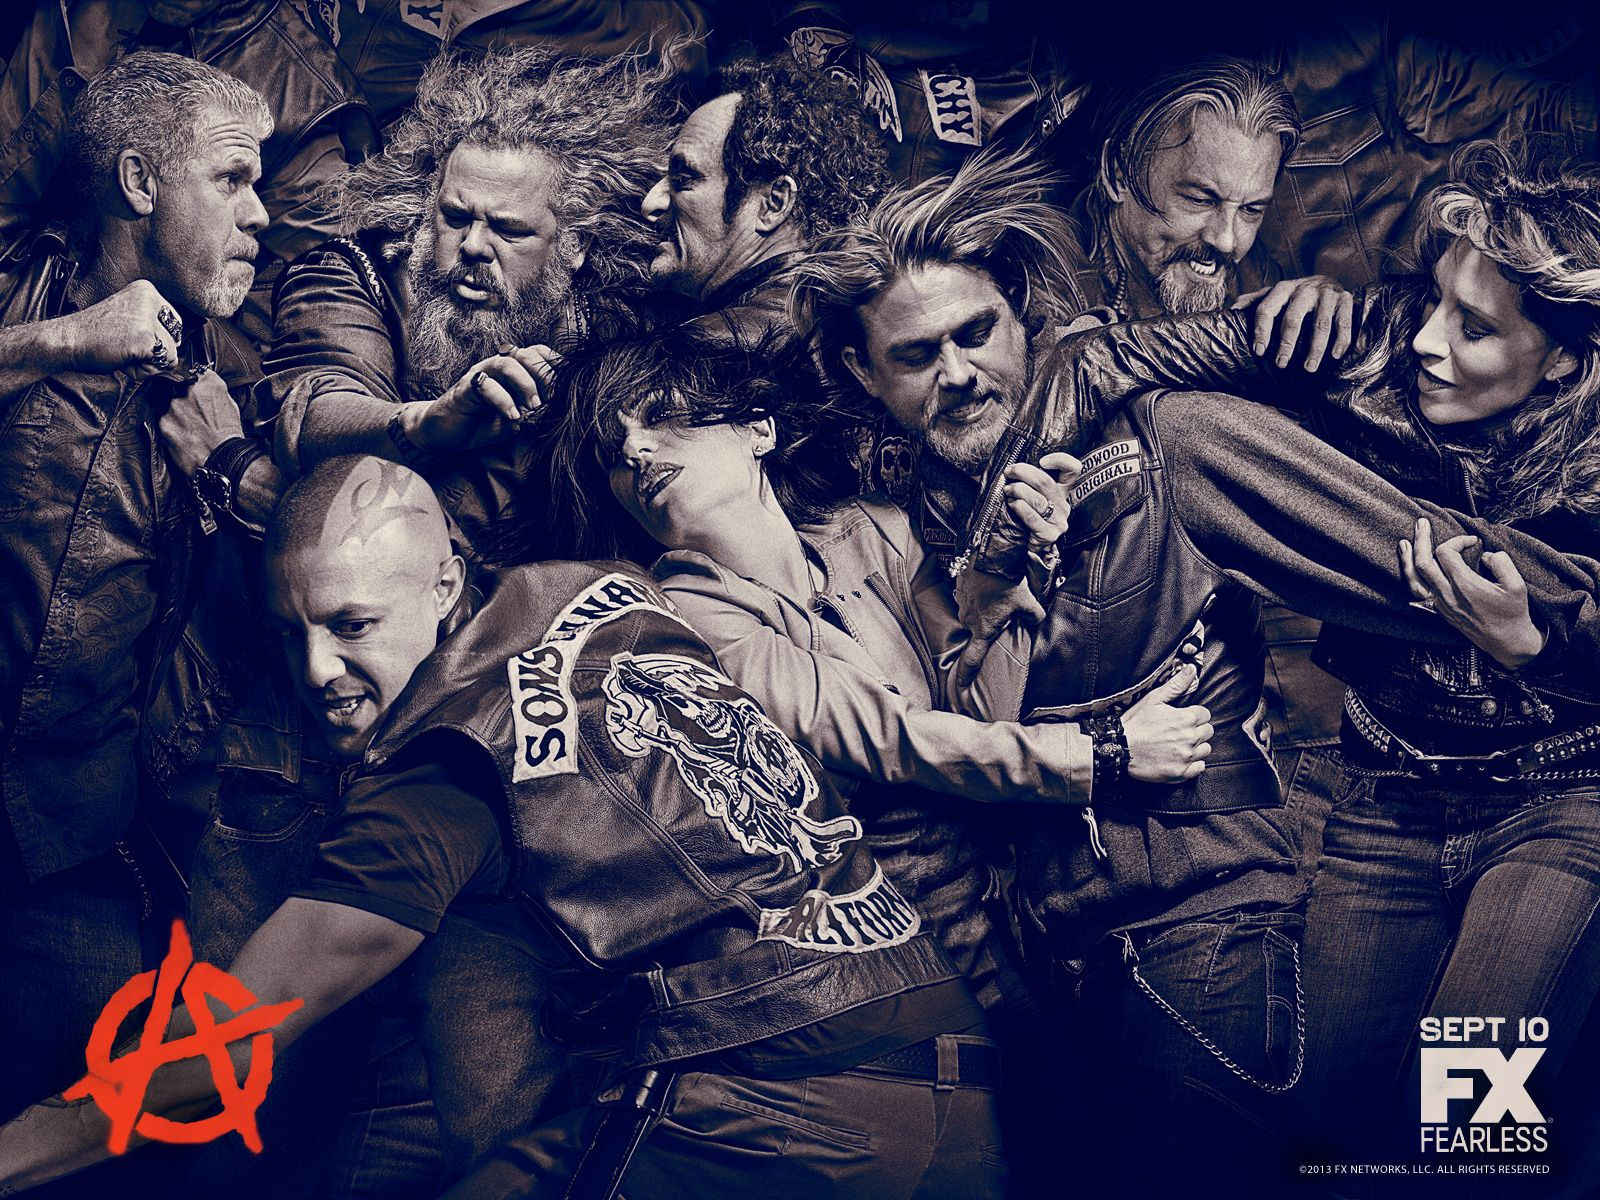 The Sons Of Anarchy Sons Of Anarchy Sons Of Anarchy Characters Anarchy